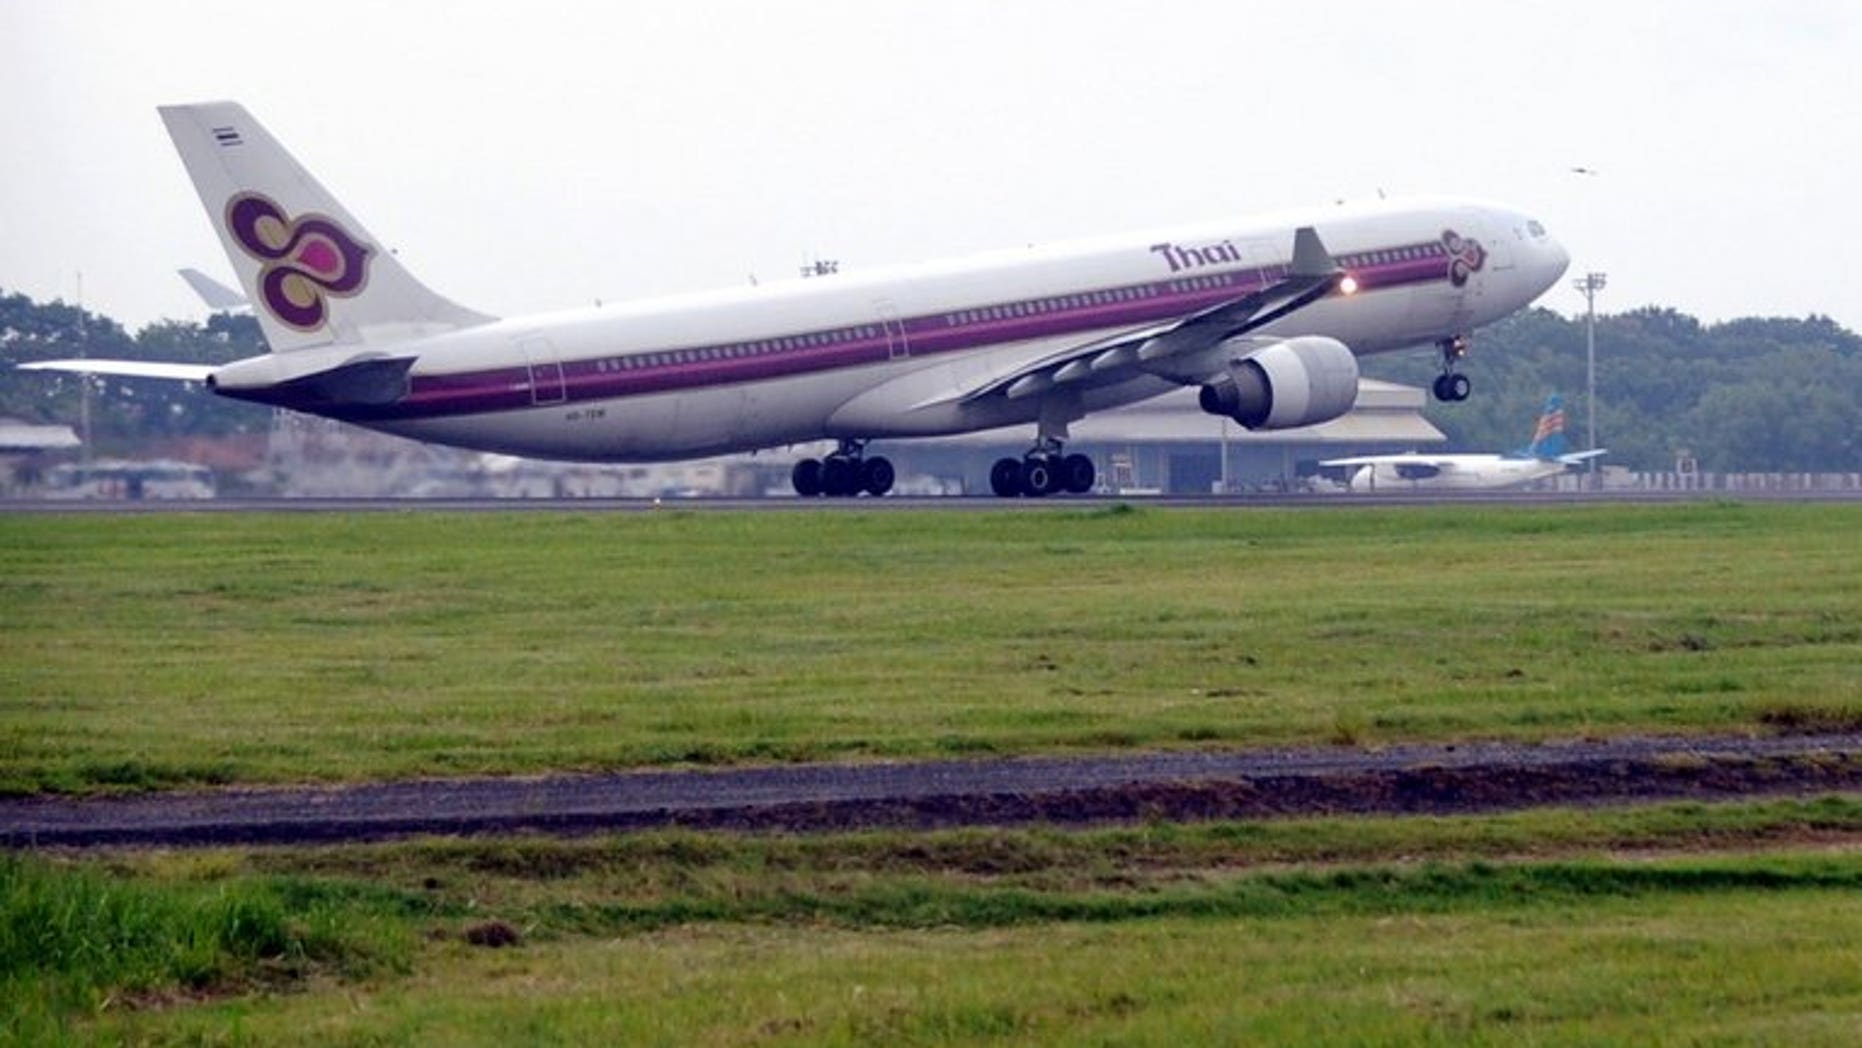 A Thai Airways plane prepares to take off at Ngurah Rai airport in Denpasar on January 27, 2010. On Monday one of the airline's planes skidded off the runway at Bangkok Airport.